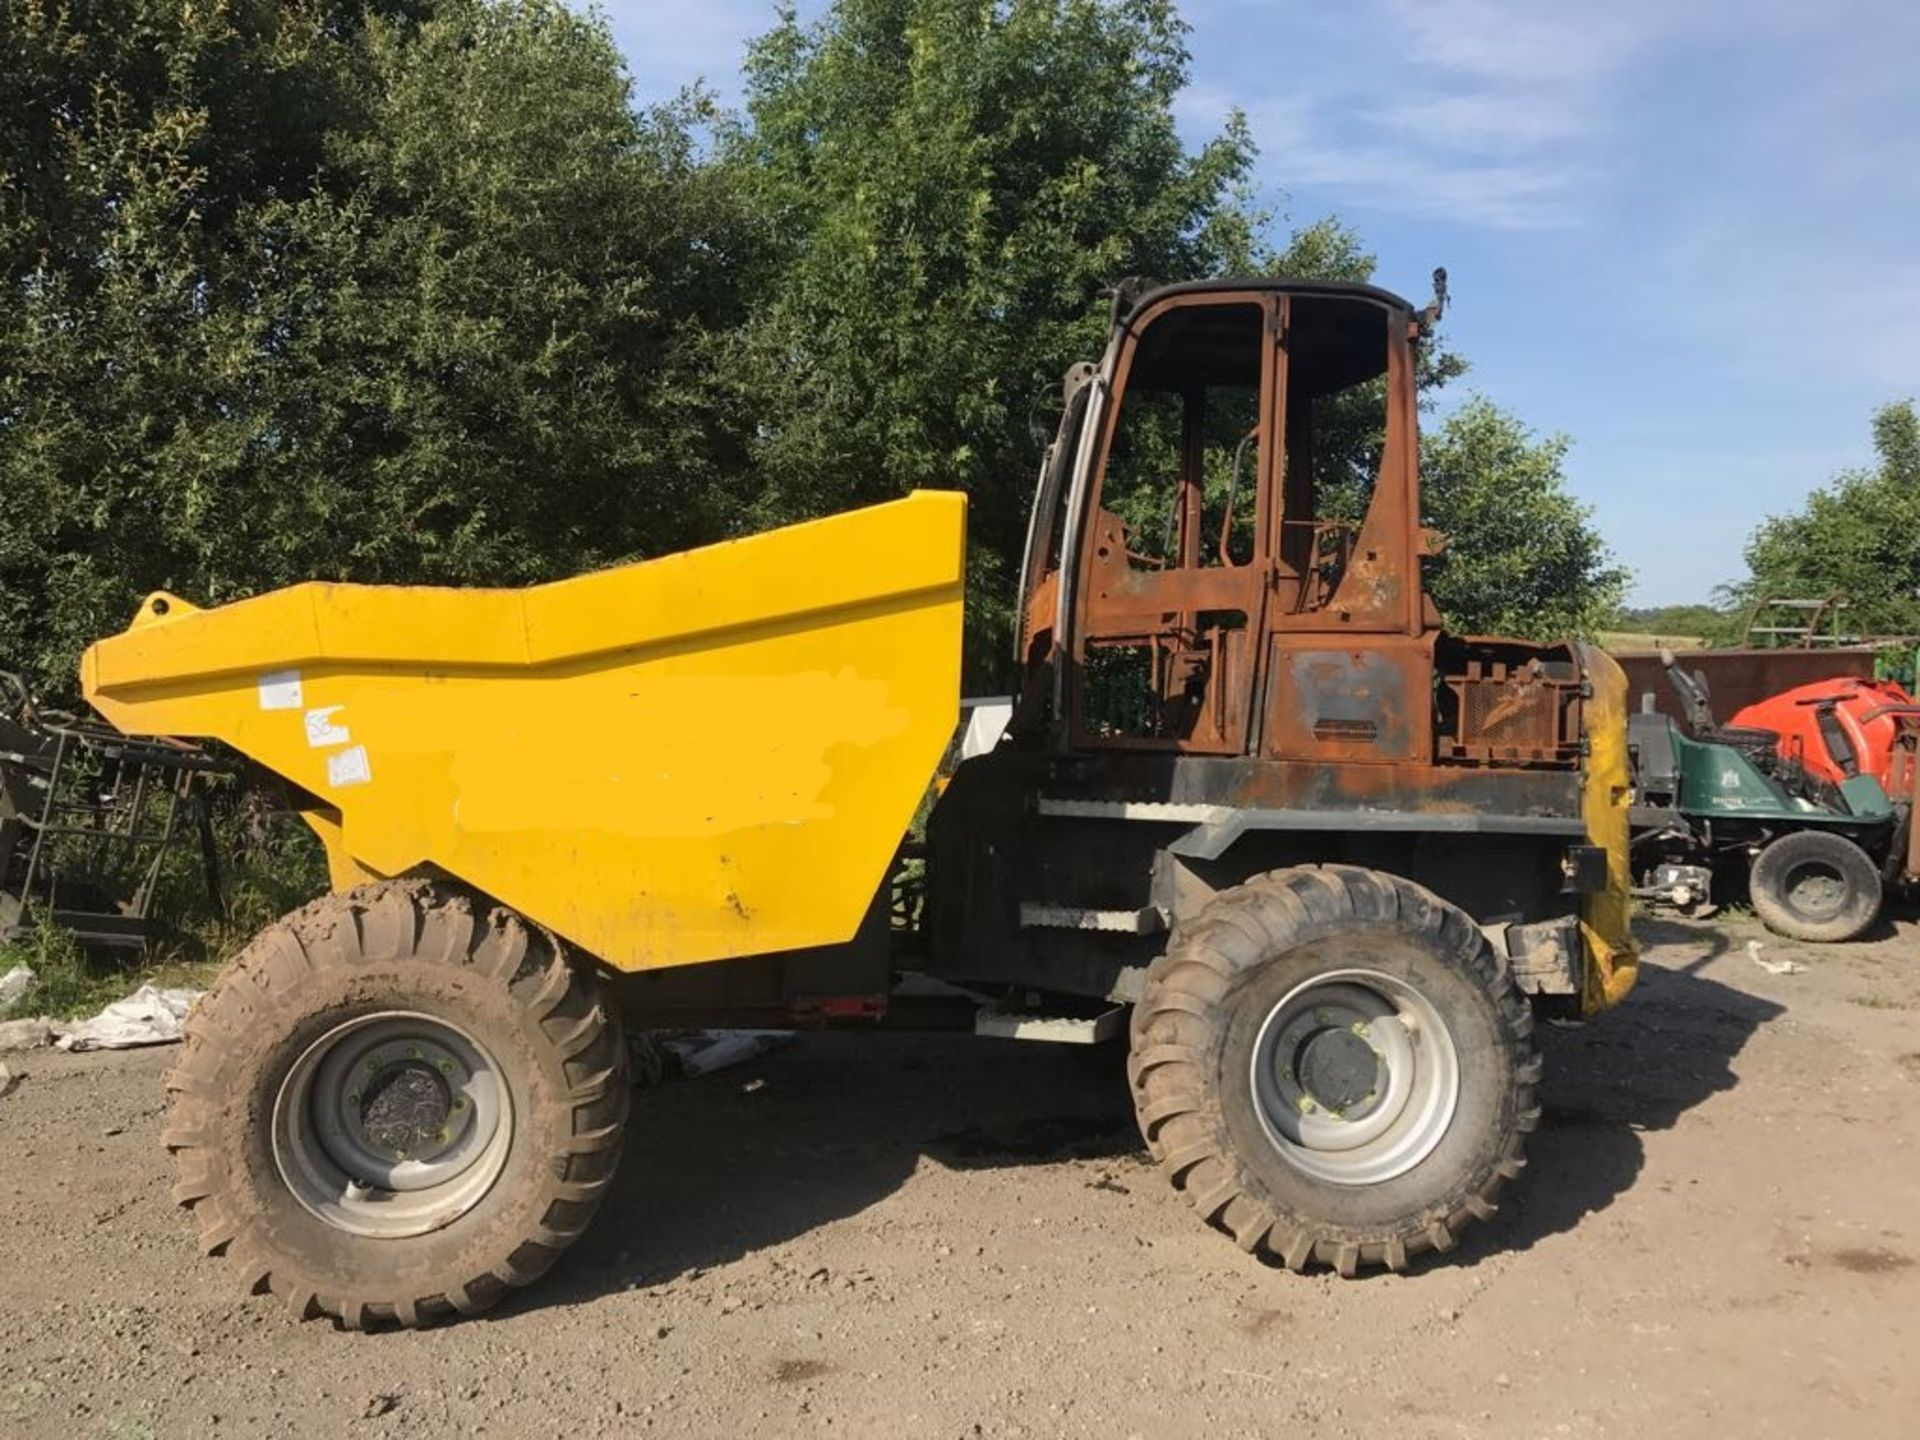 2017 WACKER NEUSON 9 TONNE DUMPER, BURNT OUT, NEW SELLING AS SPARES *PLUS VAT* - Image 4 of 6